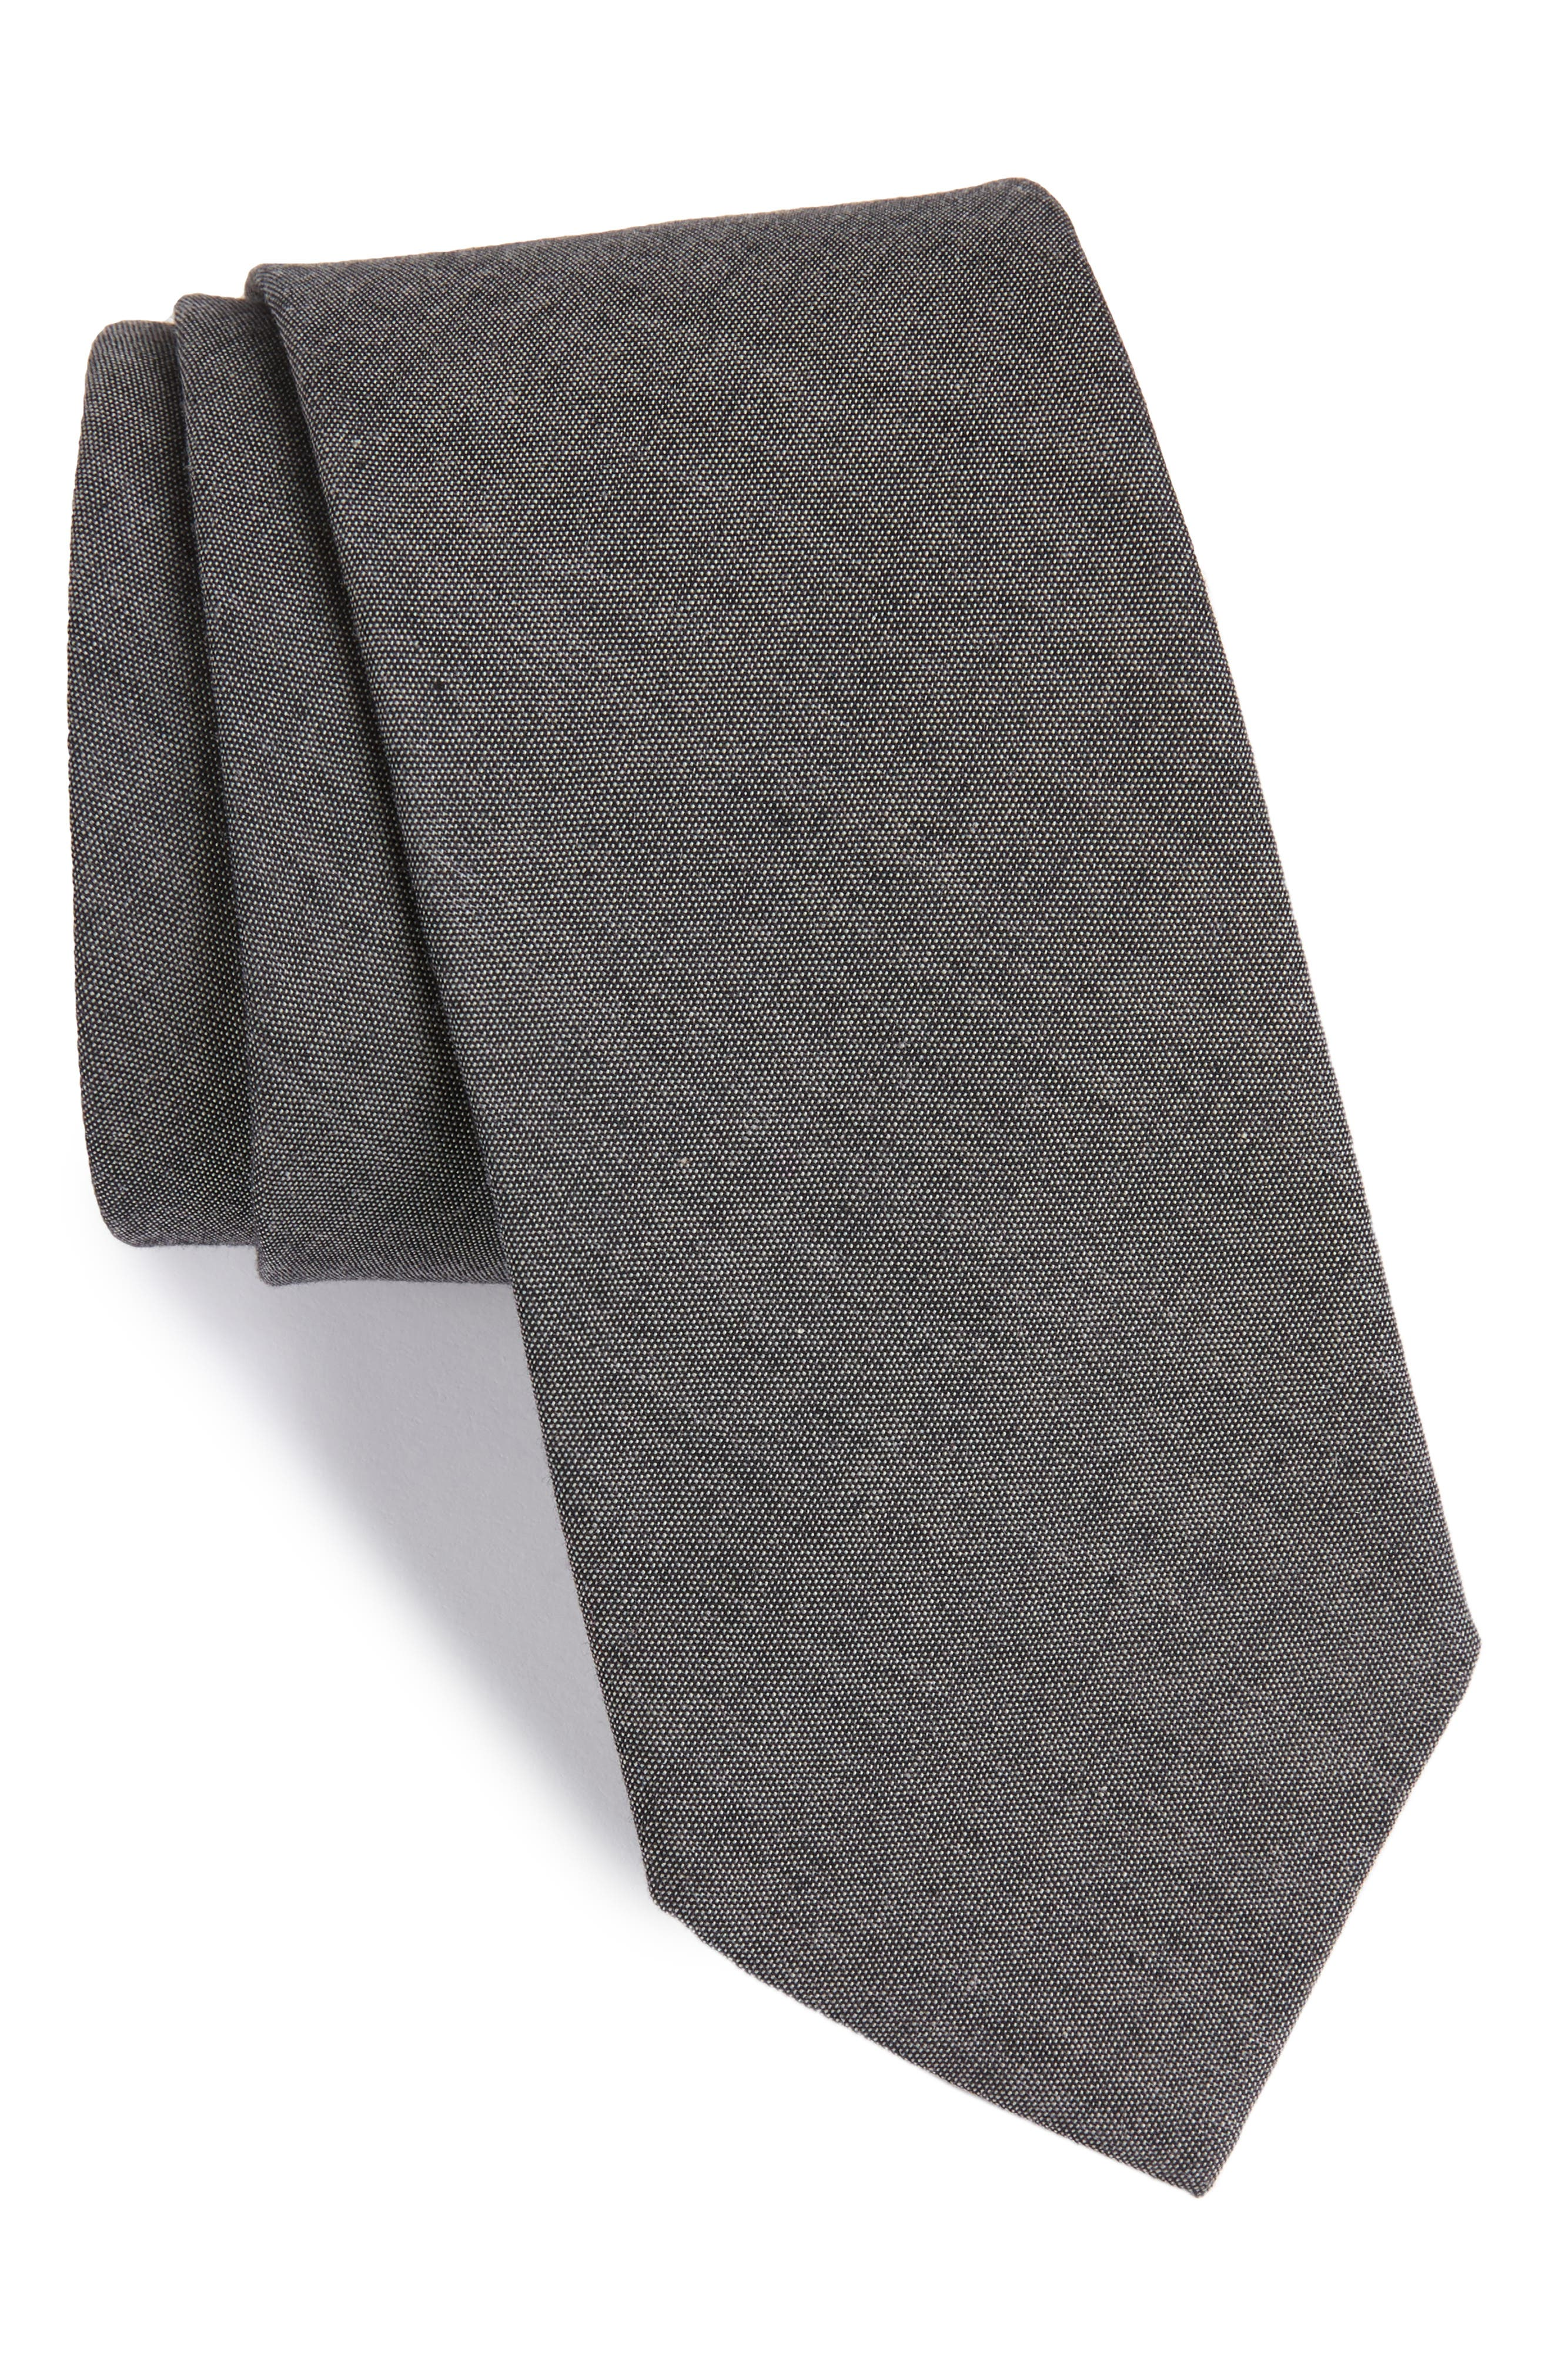 Classic Chambray Cotton Tie,                             Main thumbnail 1, color,                             035